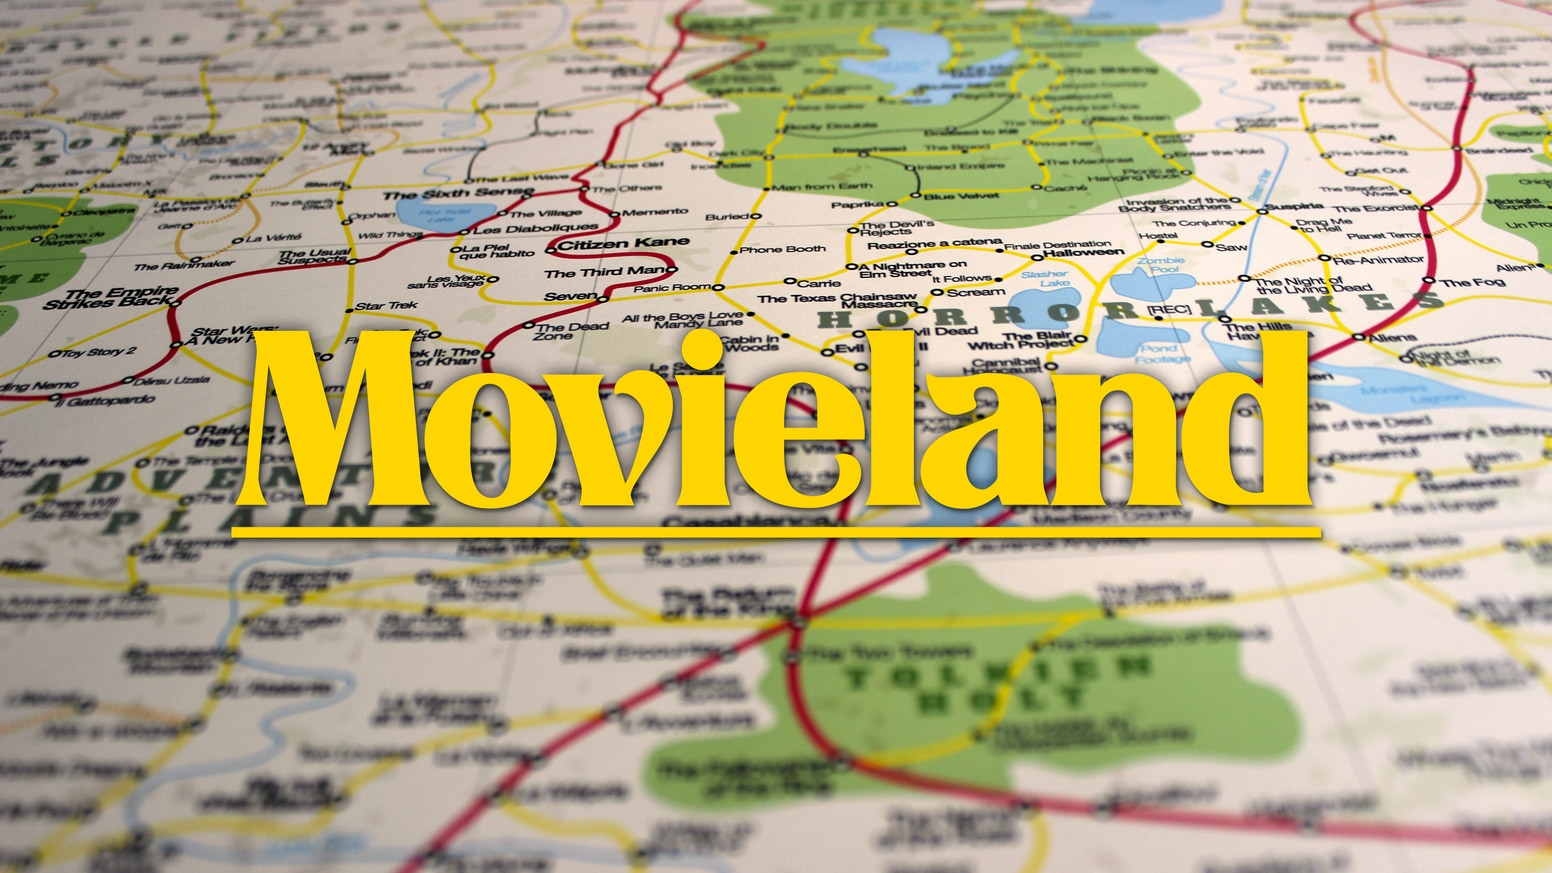 The Great Map Of Movieland Poster By David Honnorat Kickstarter